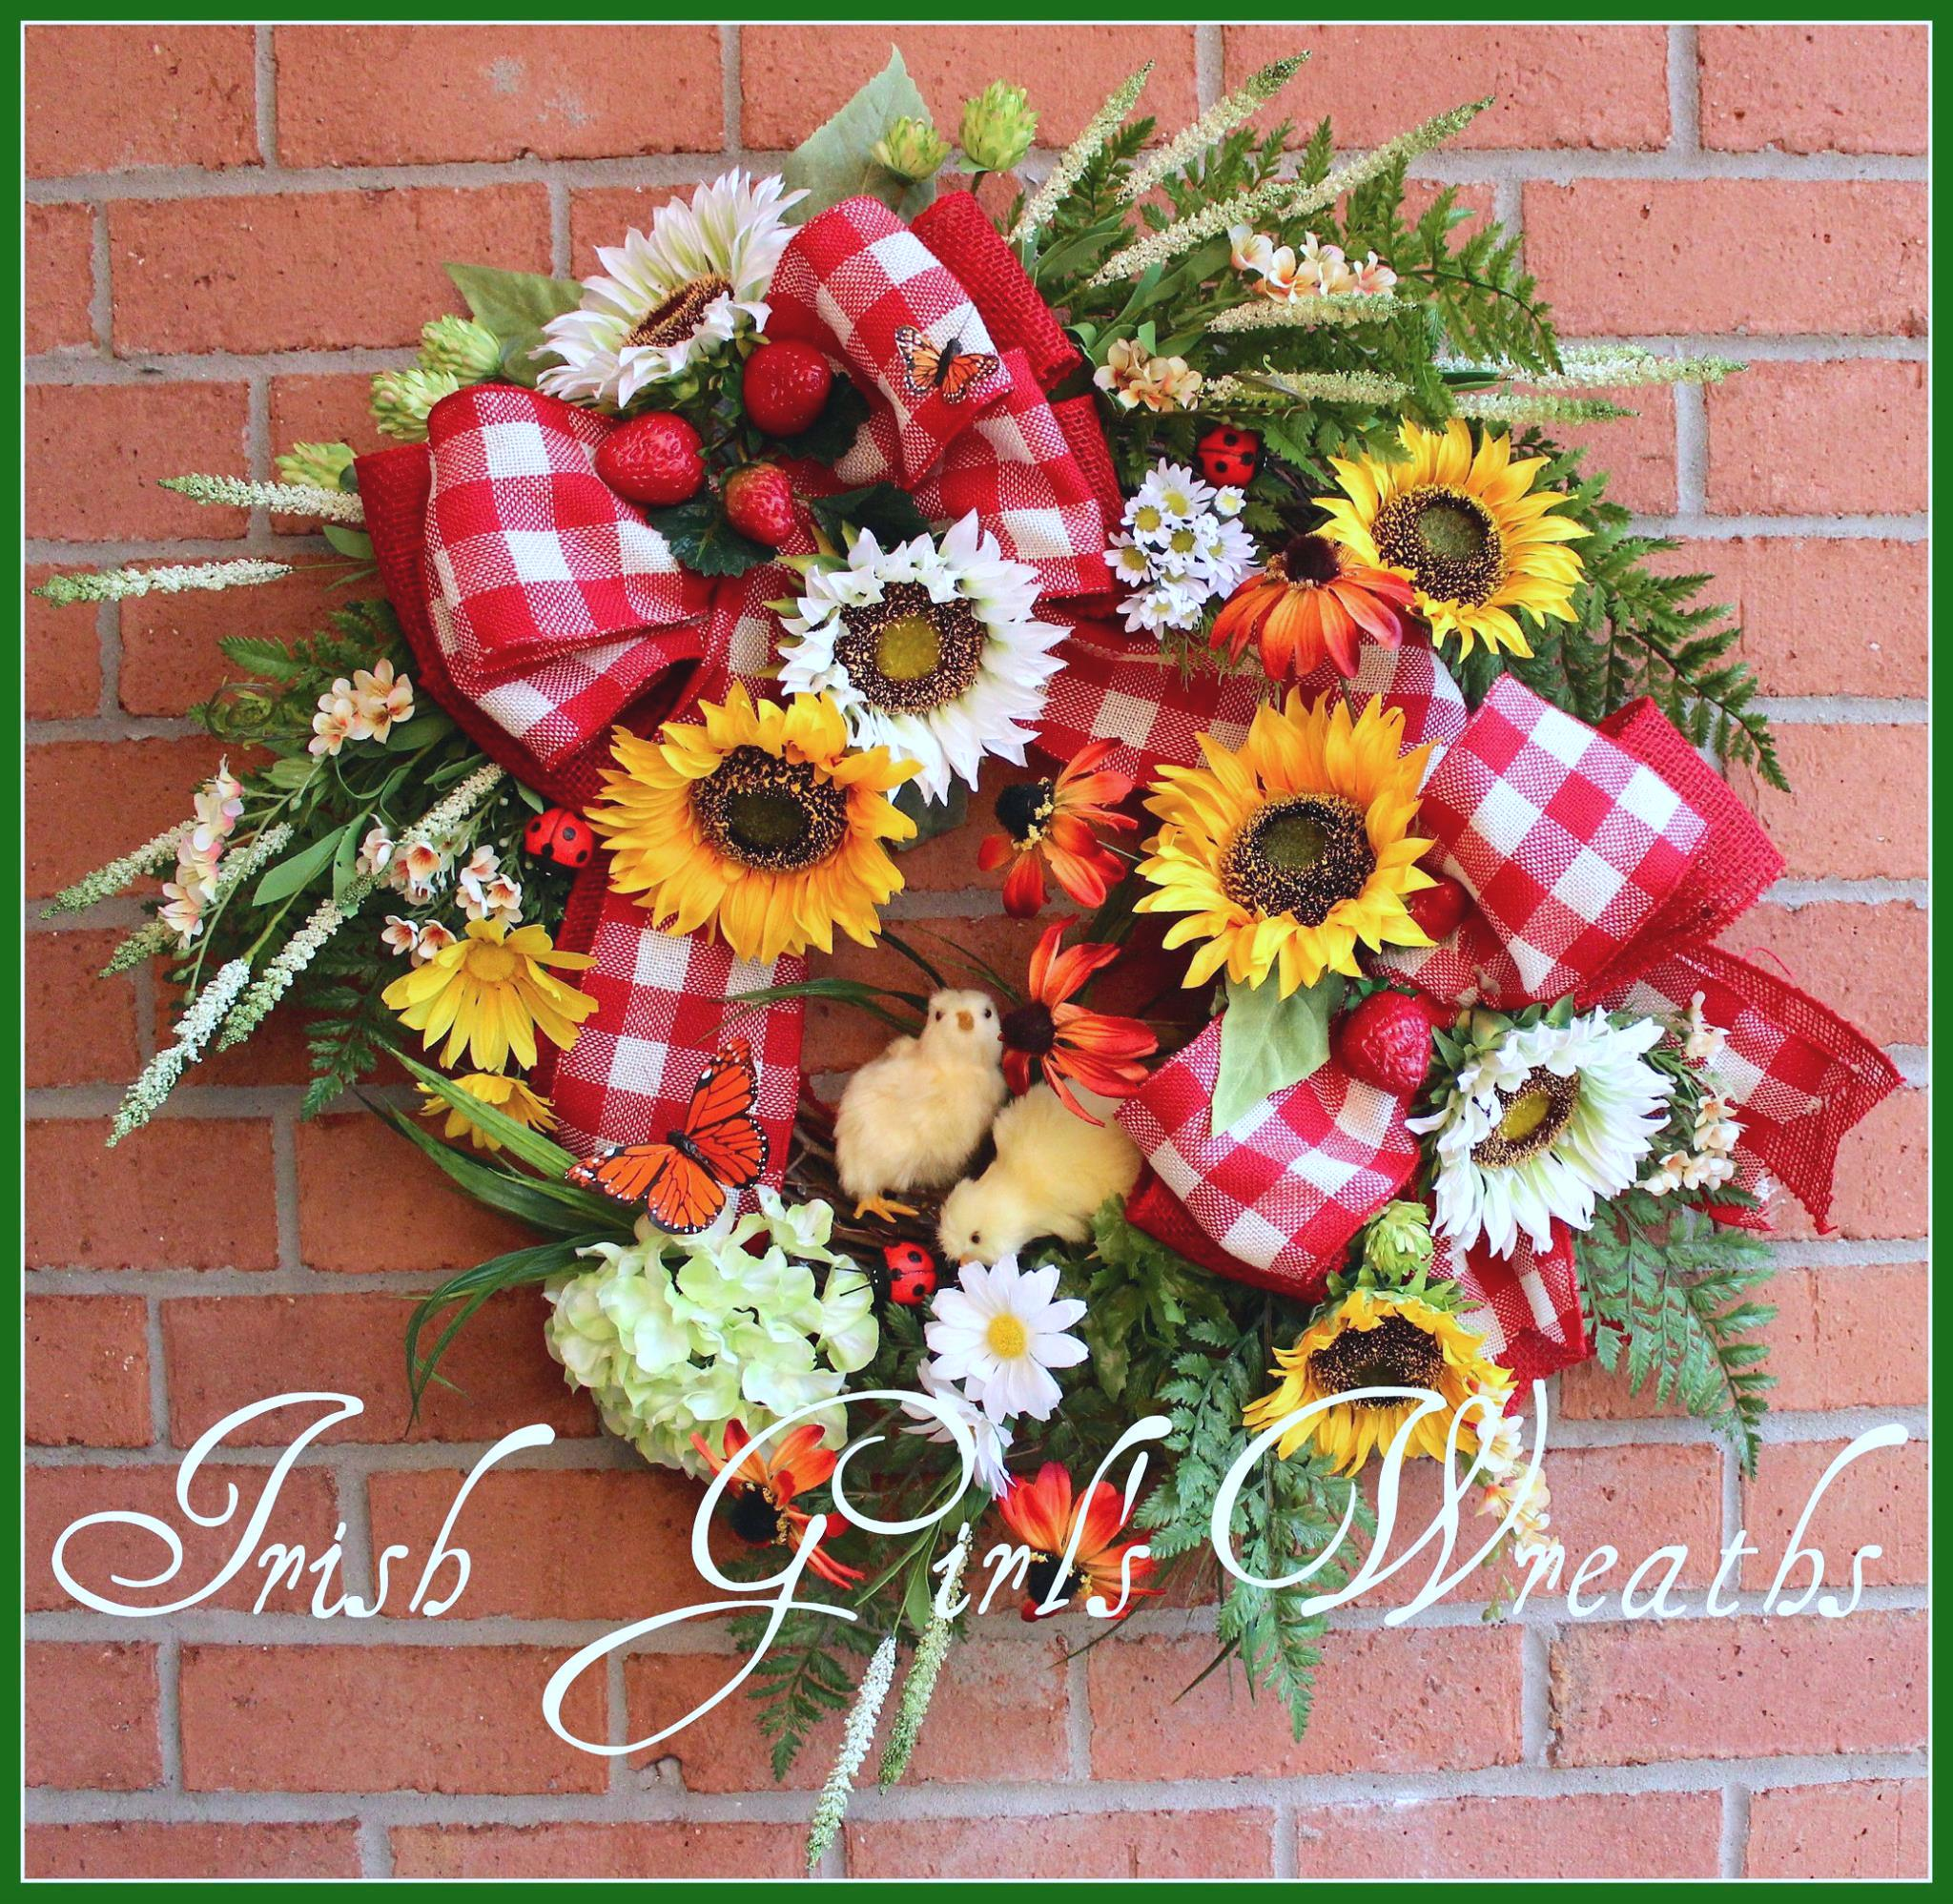 Springtime Chicks on the Farm Rustic Country Sunflower Wreath, custom